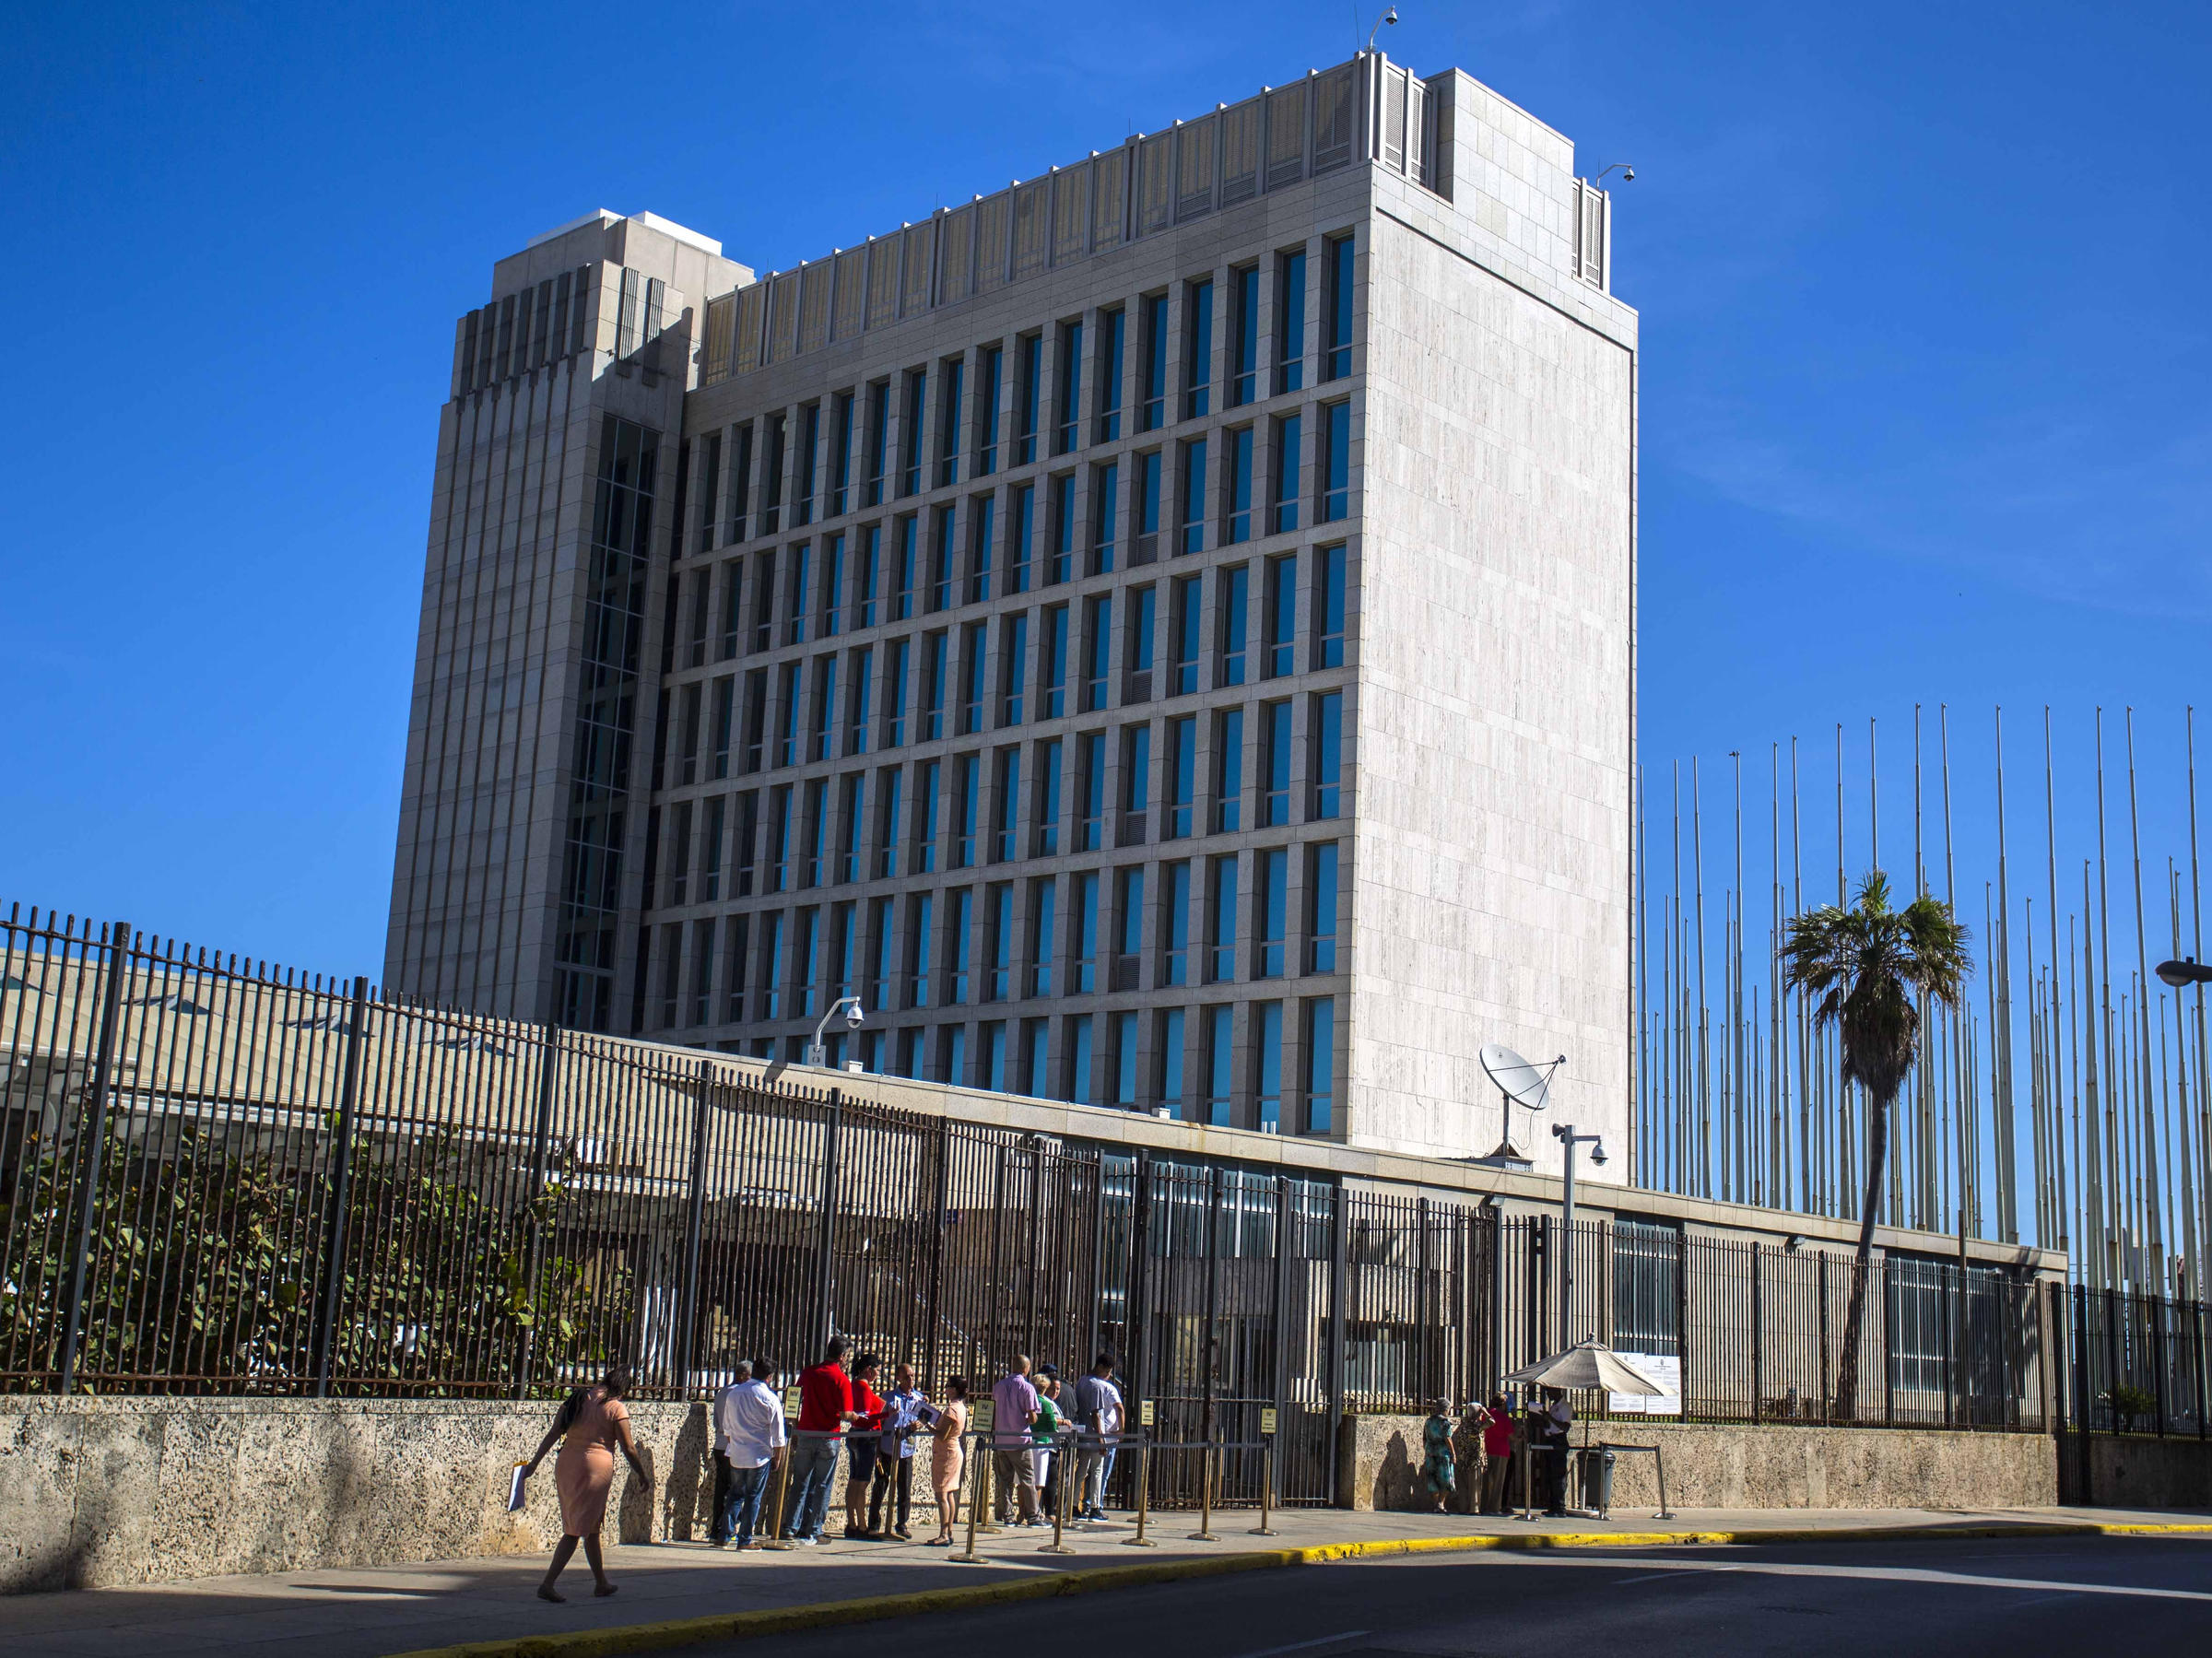 Cuba: Deteriorating US Diplomatic Ties Will Keep Cuba Reliant on Venezuela